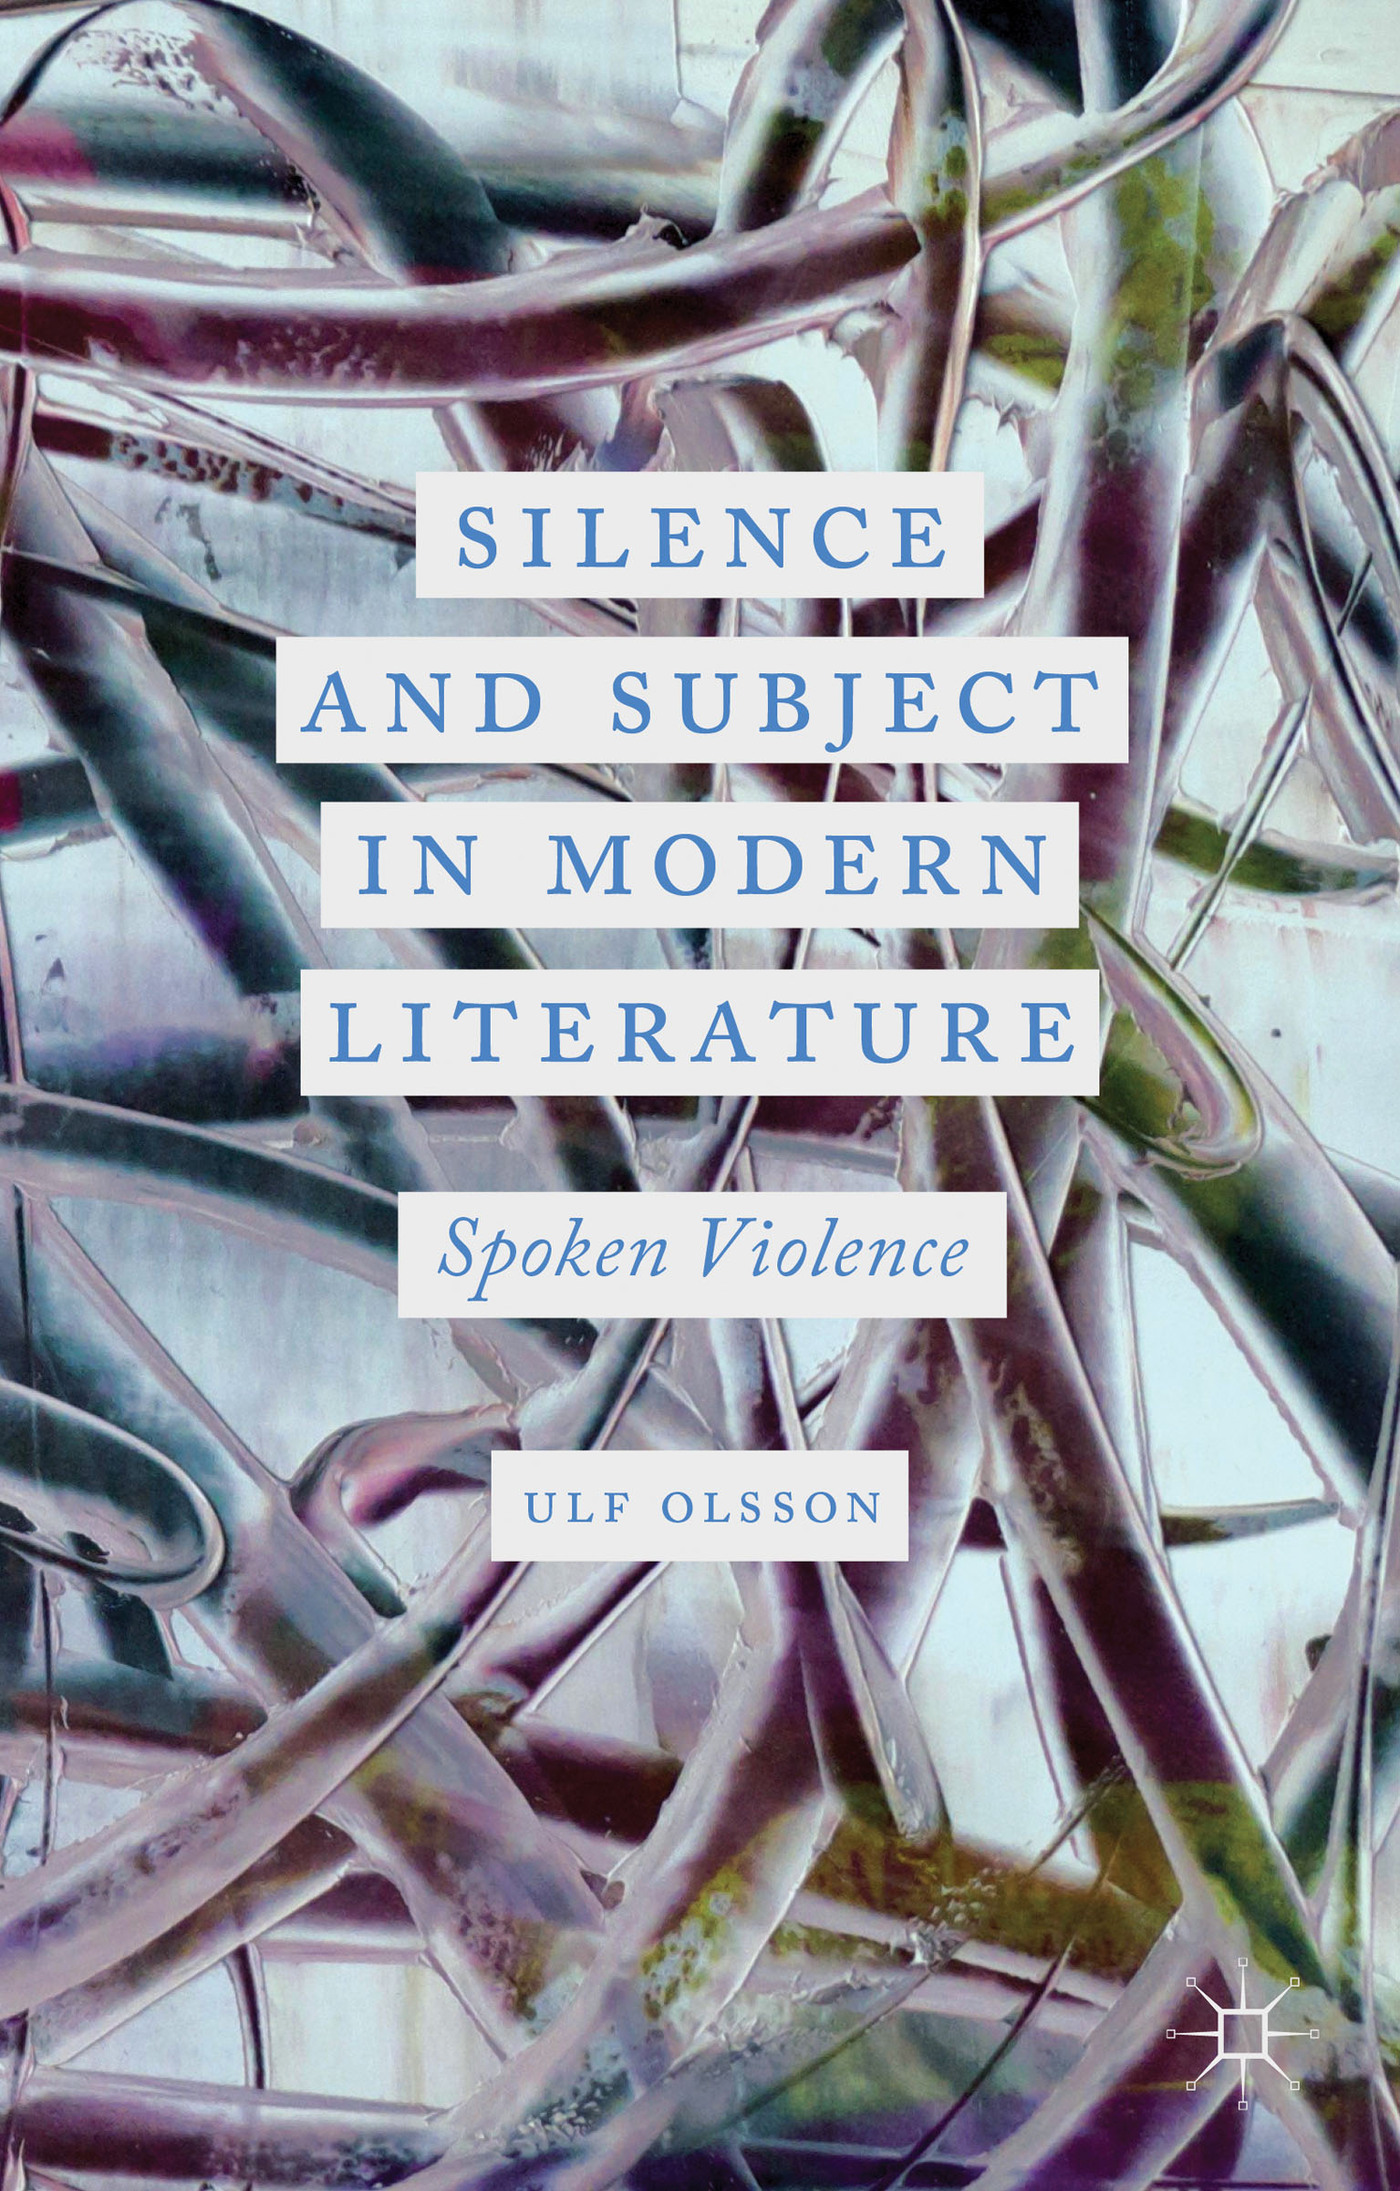 Silence and Subject in Modern Literature : Spoken Violence (eBook, 2013) [WorldCat.org]